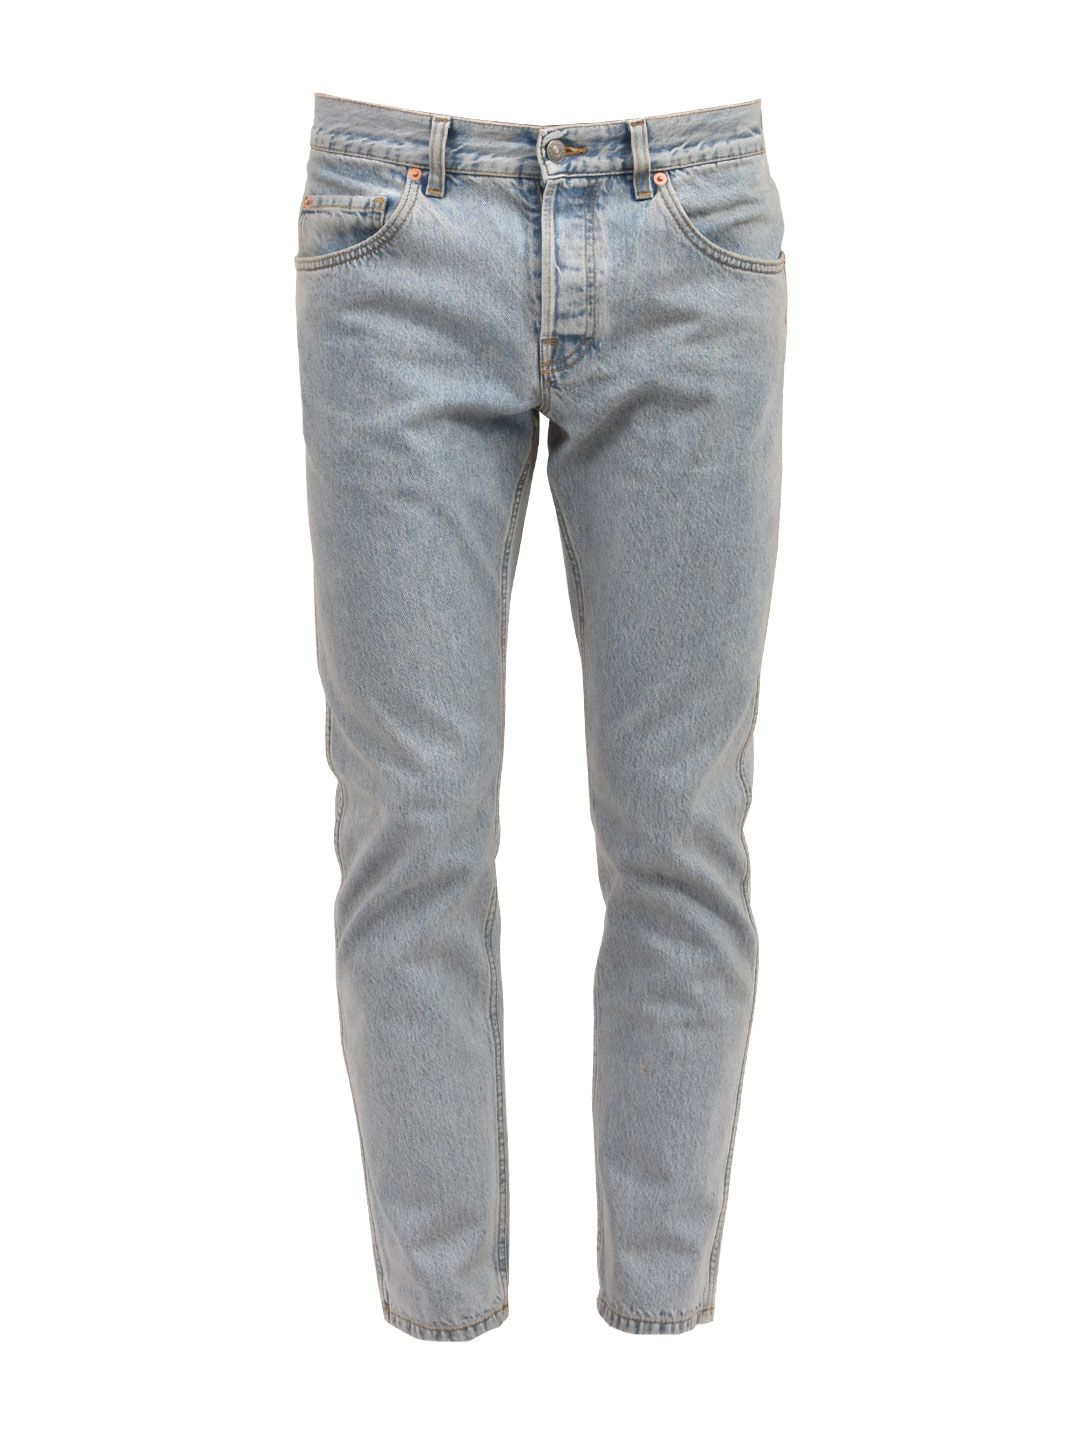 Gucci Marble Washed Denim Jeans 10430810